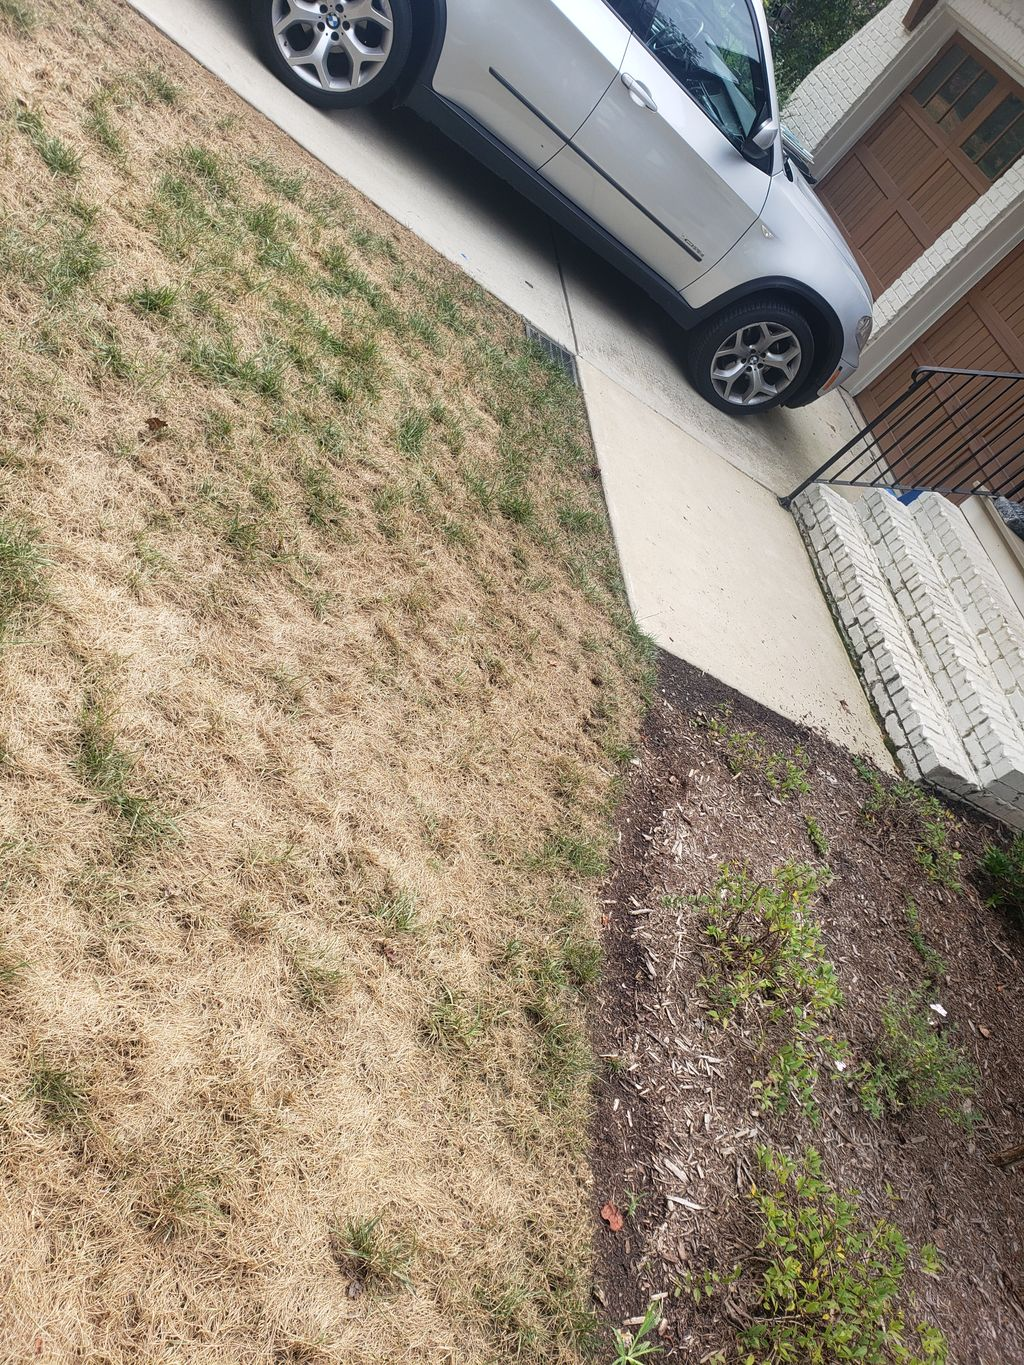 french drain system, mulch bed with plants, other rock beds